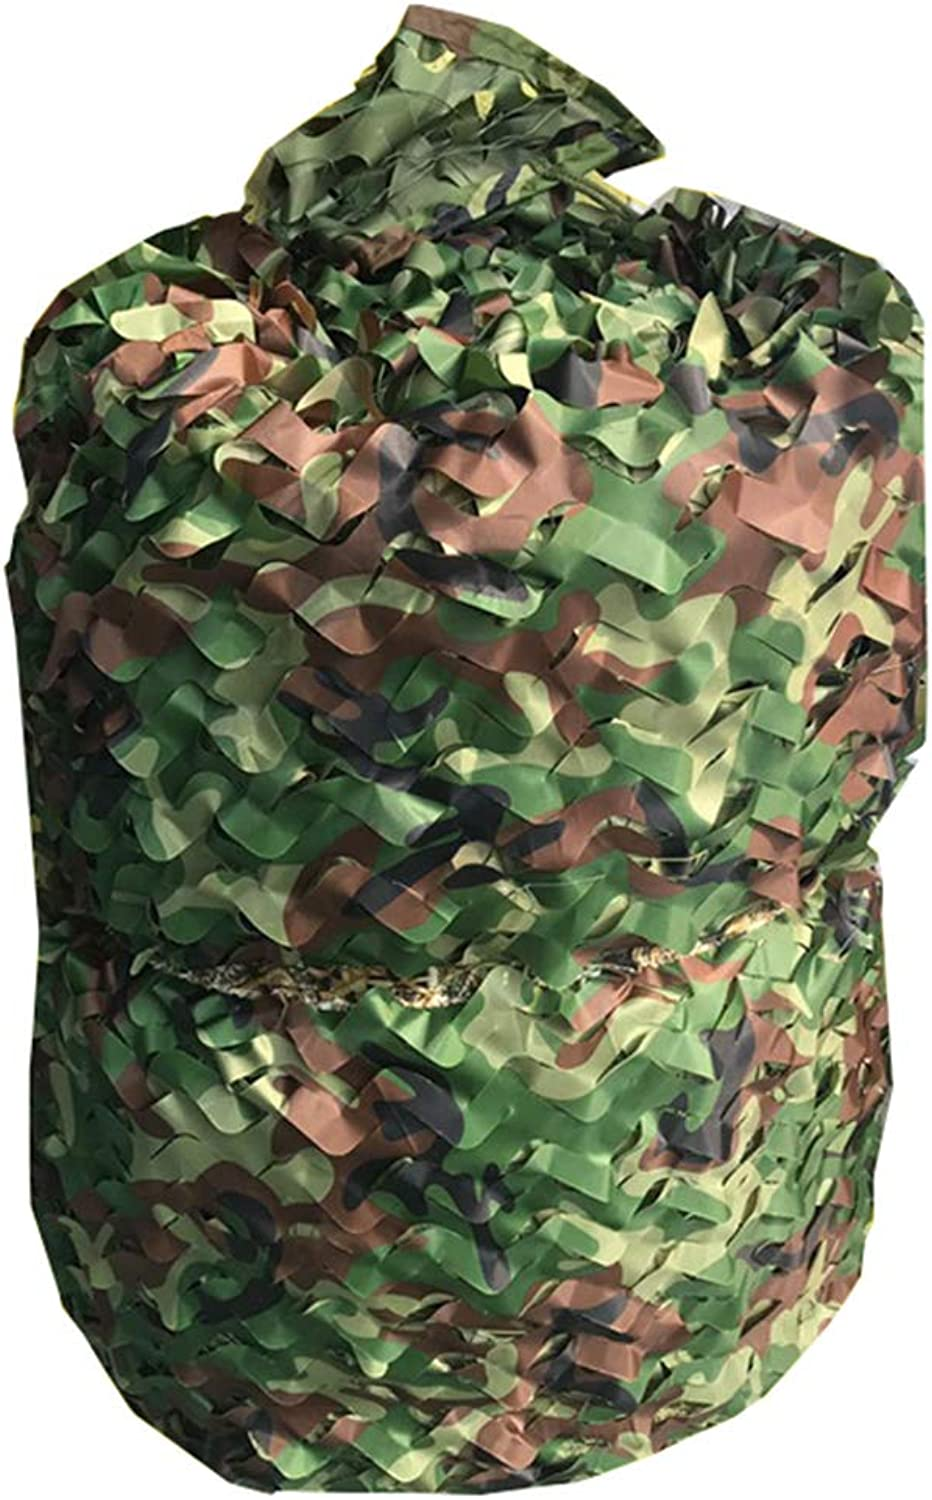 Camouflage Netting Army Military Oxford Fabric UV Resistant Shade Camo Netting Car Covering Tent Woodland Camping Hunting Blinds Netting Jungle Photography